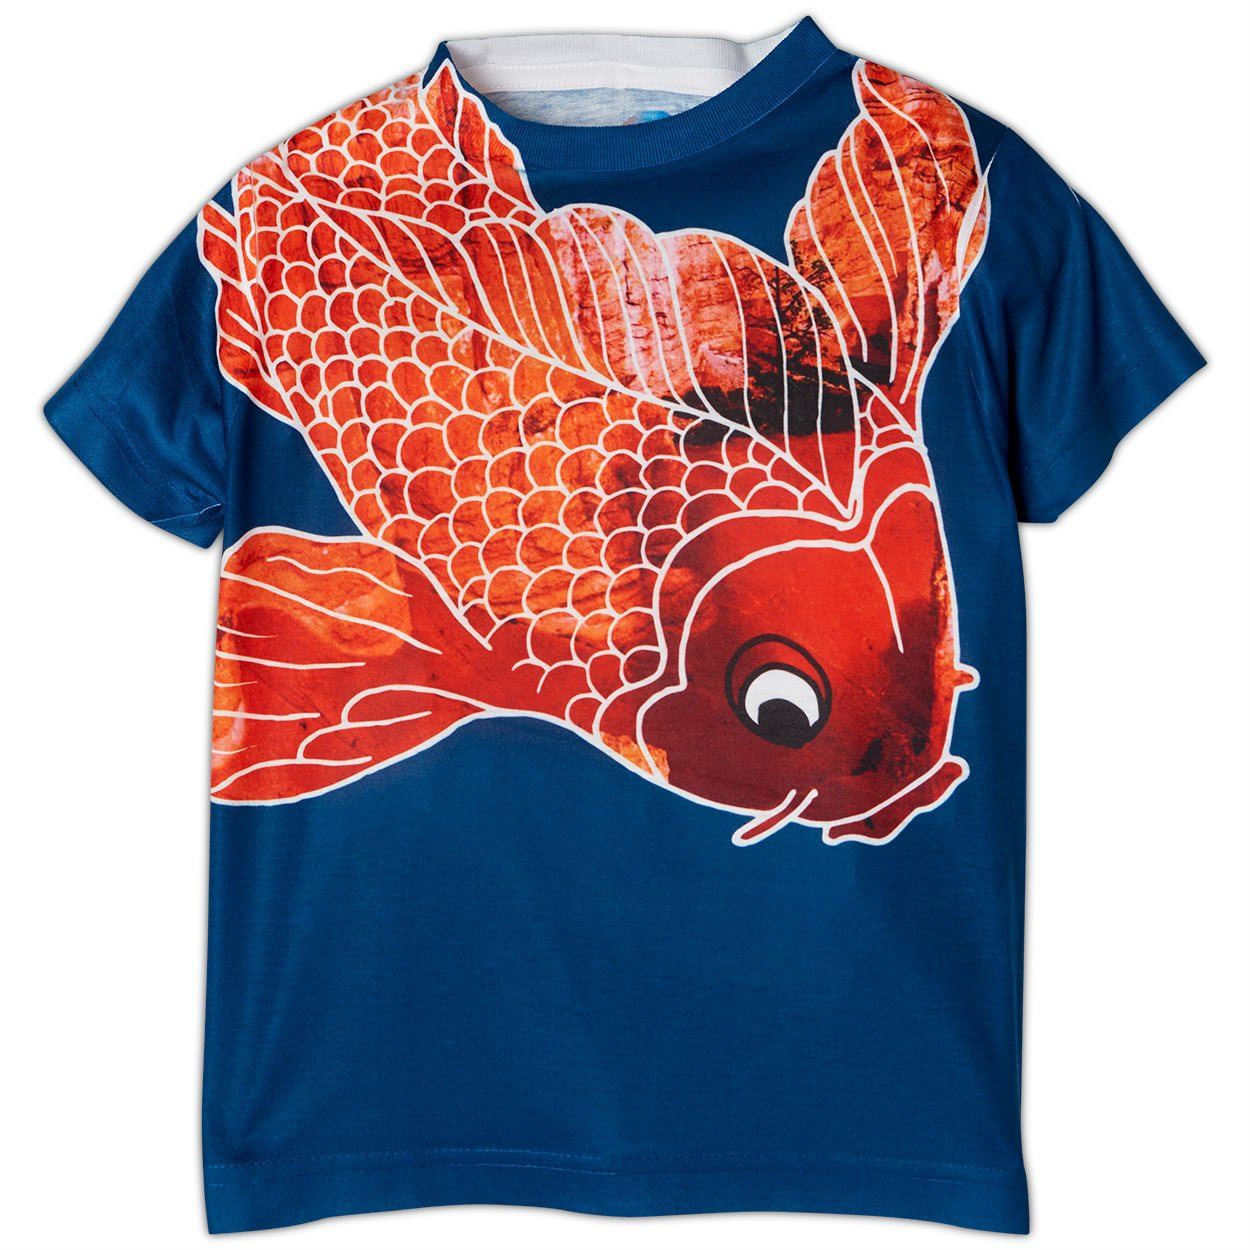 Boys Koi Fish Graphic Tshirt Blue Orange Size Xs L Sunpoplife